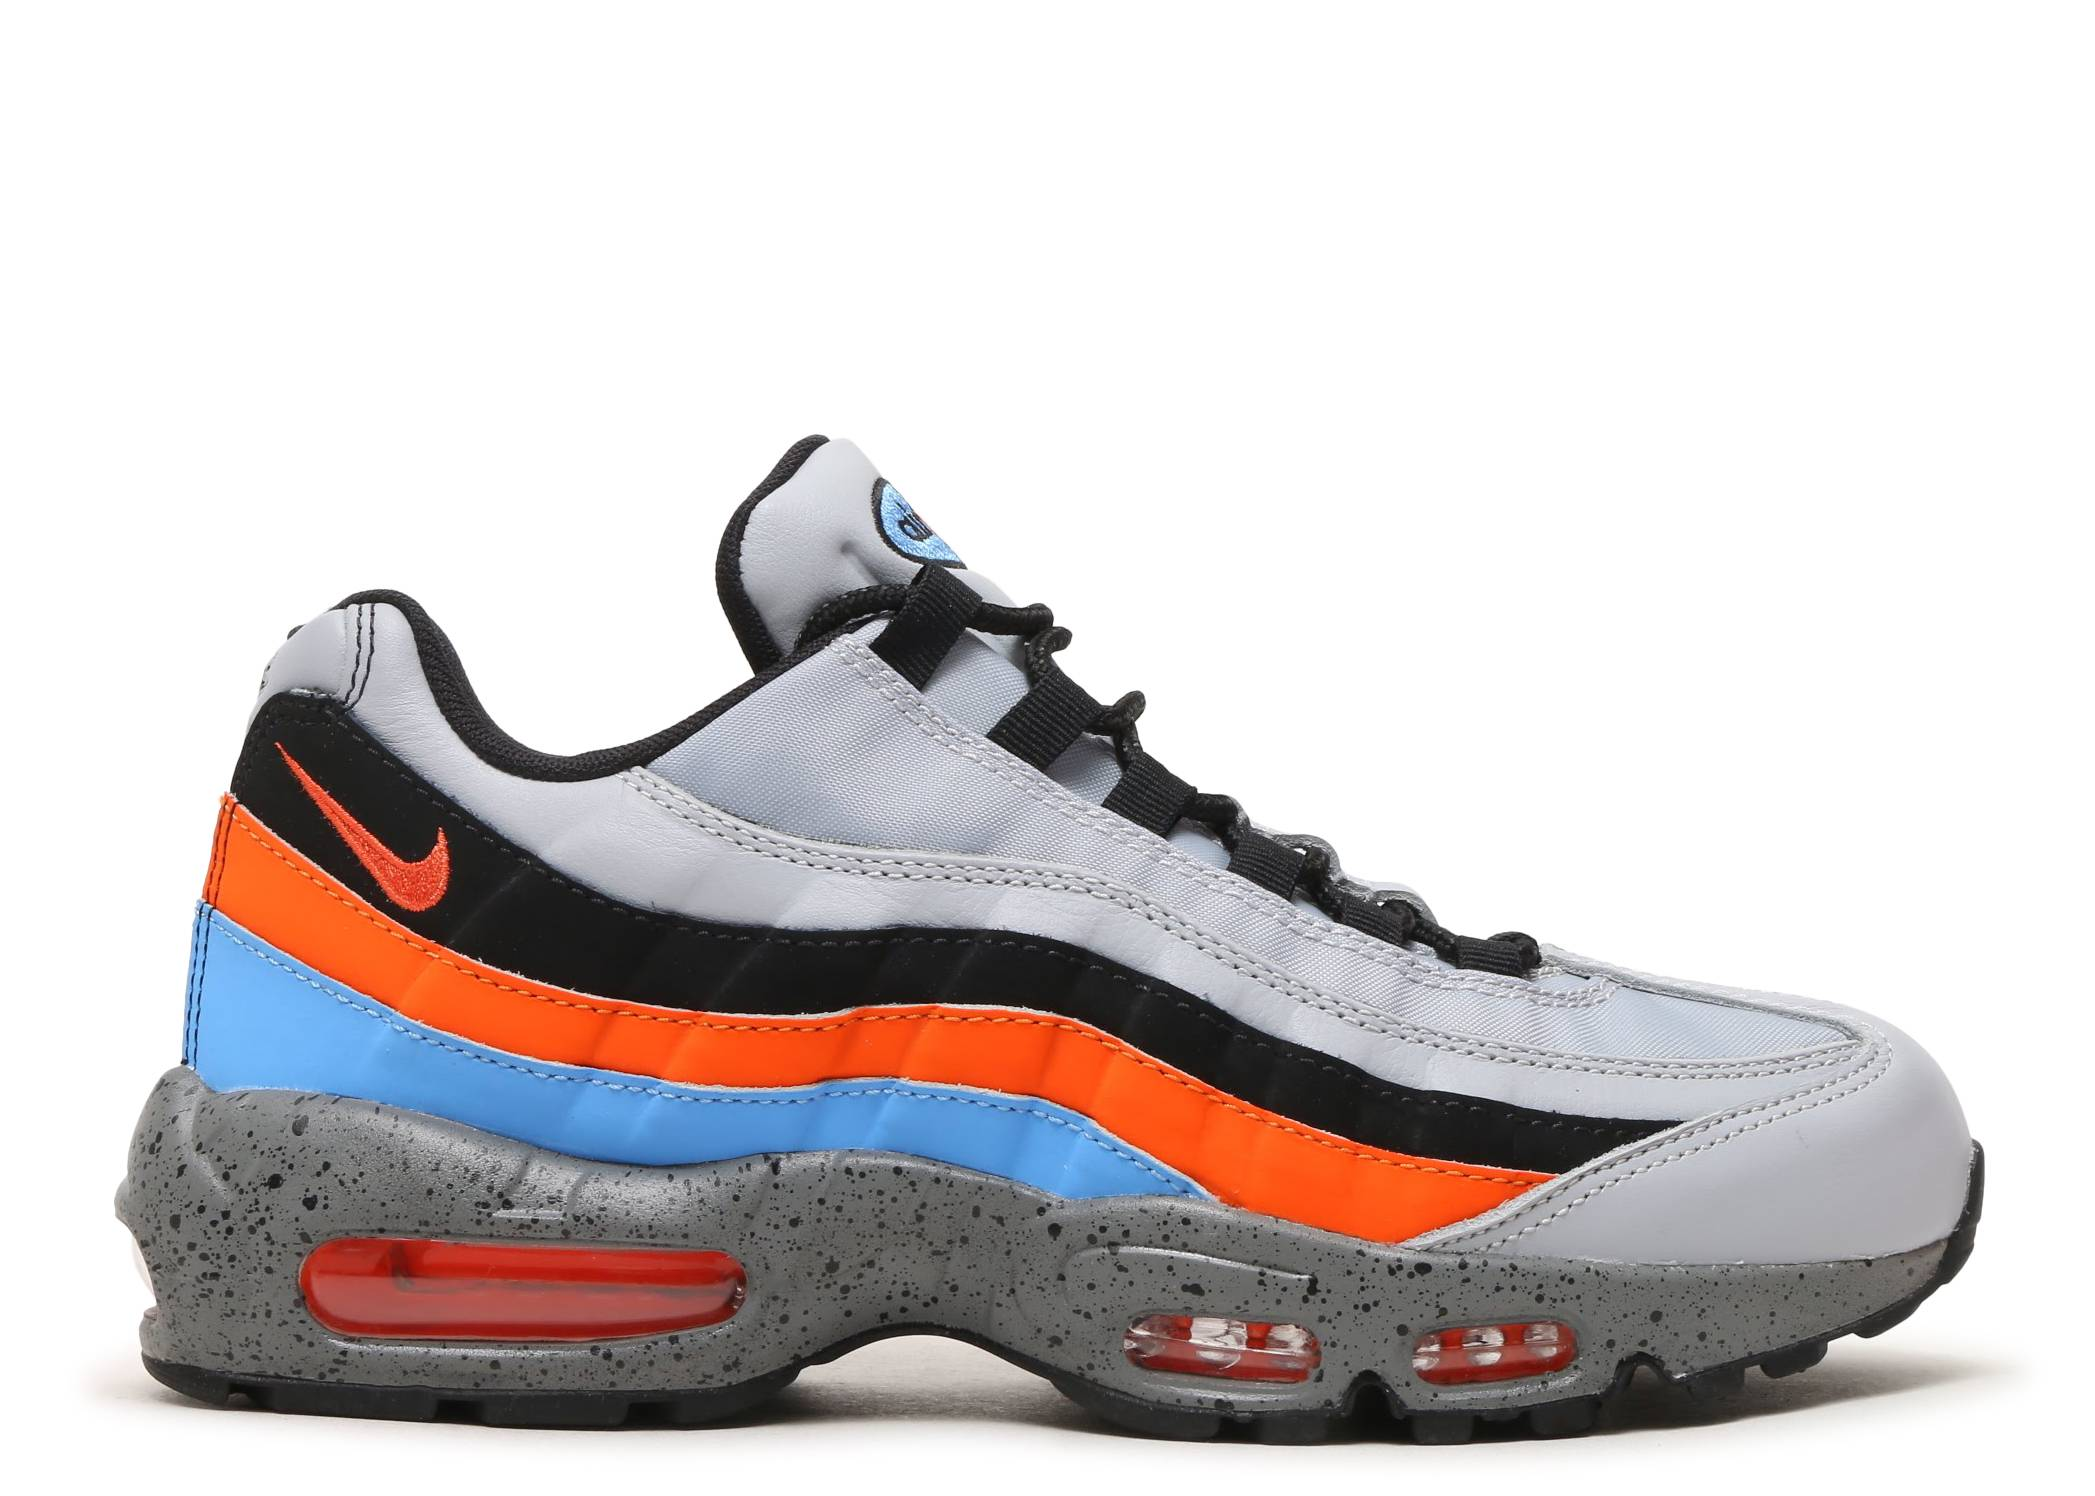 dd256f6570110 AIR MAX 95 PRM - Nike - 538416 015 - wolf grey safety orange ...